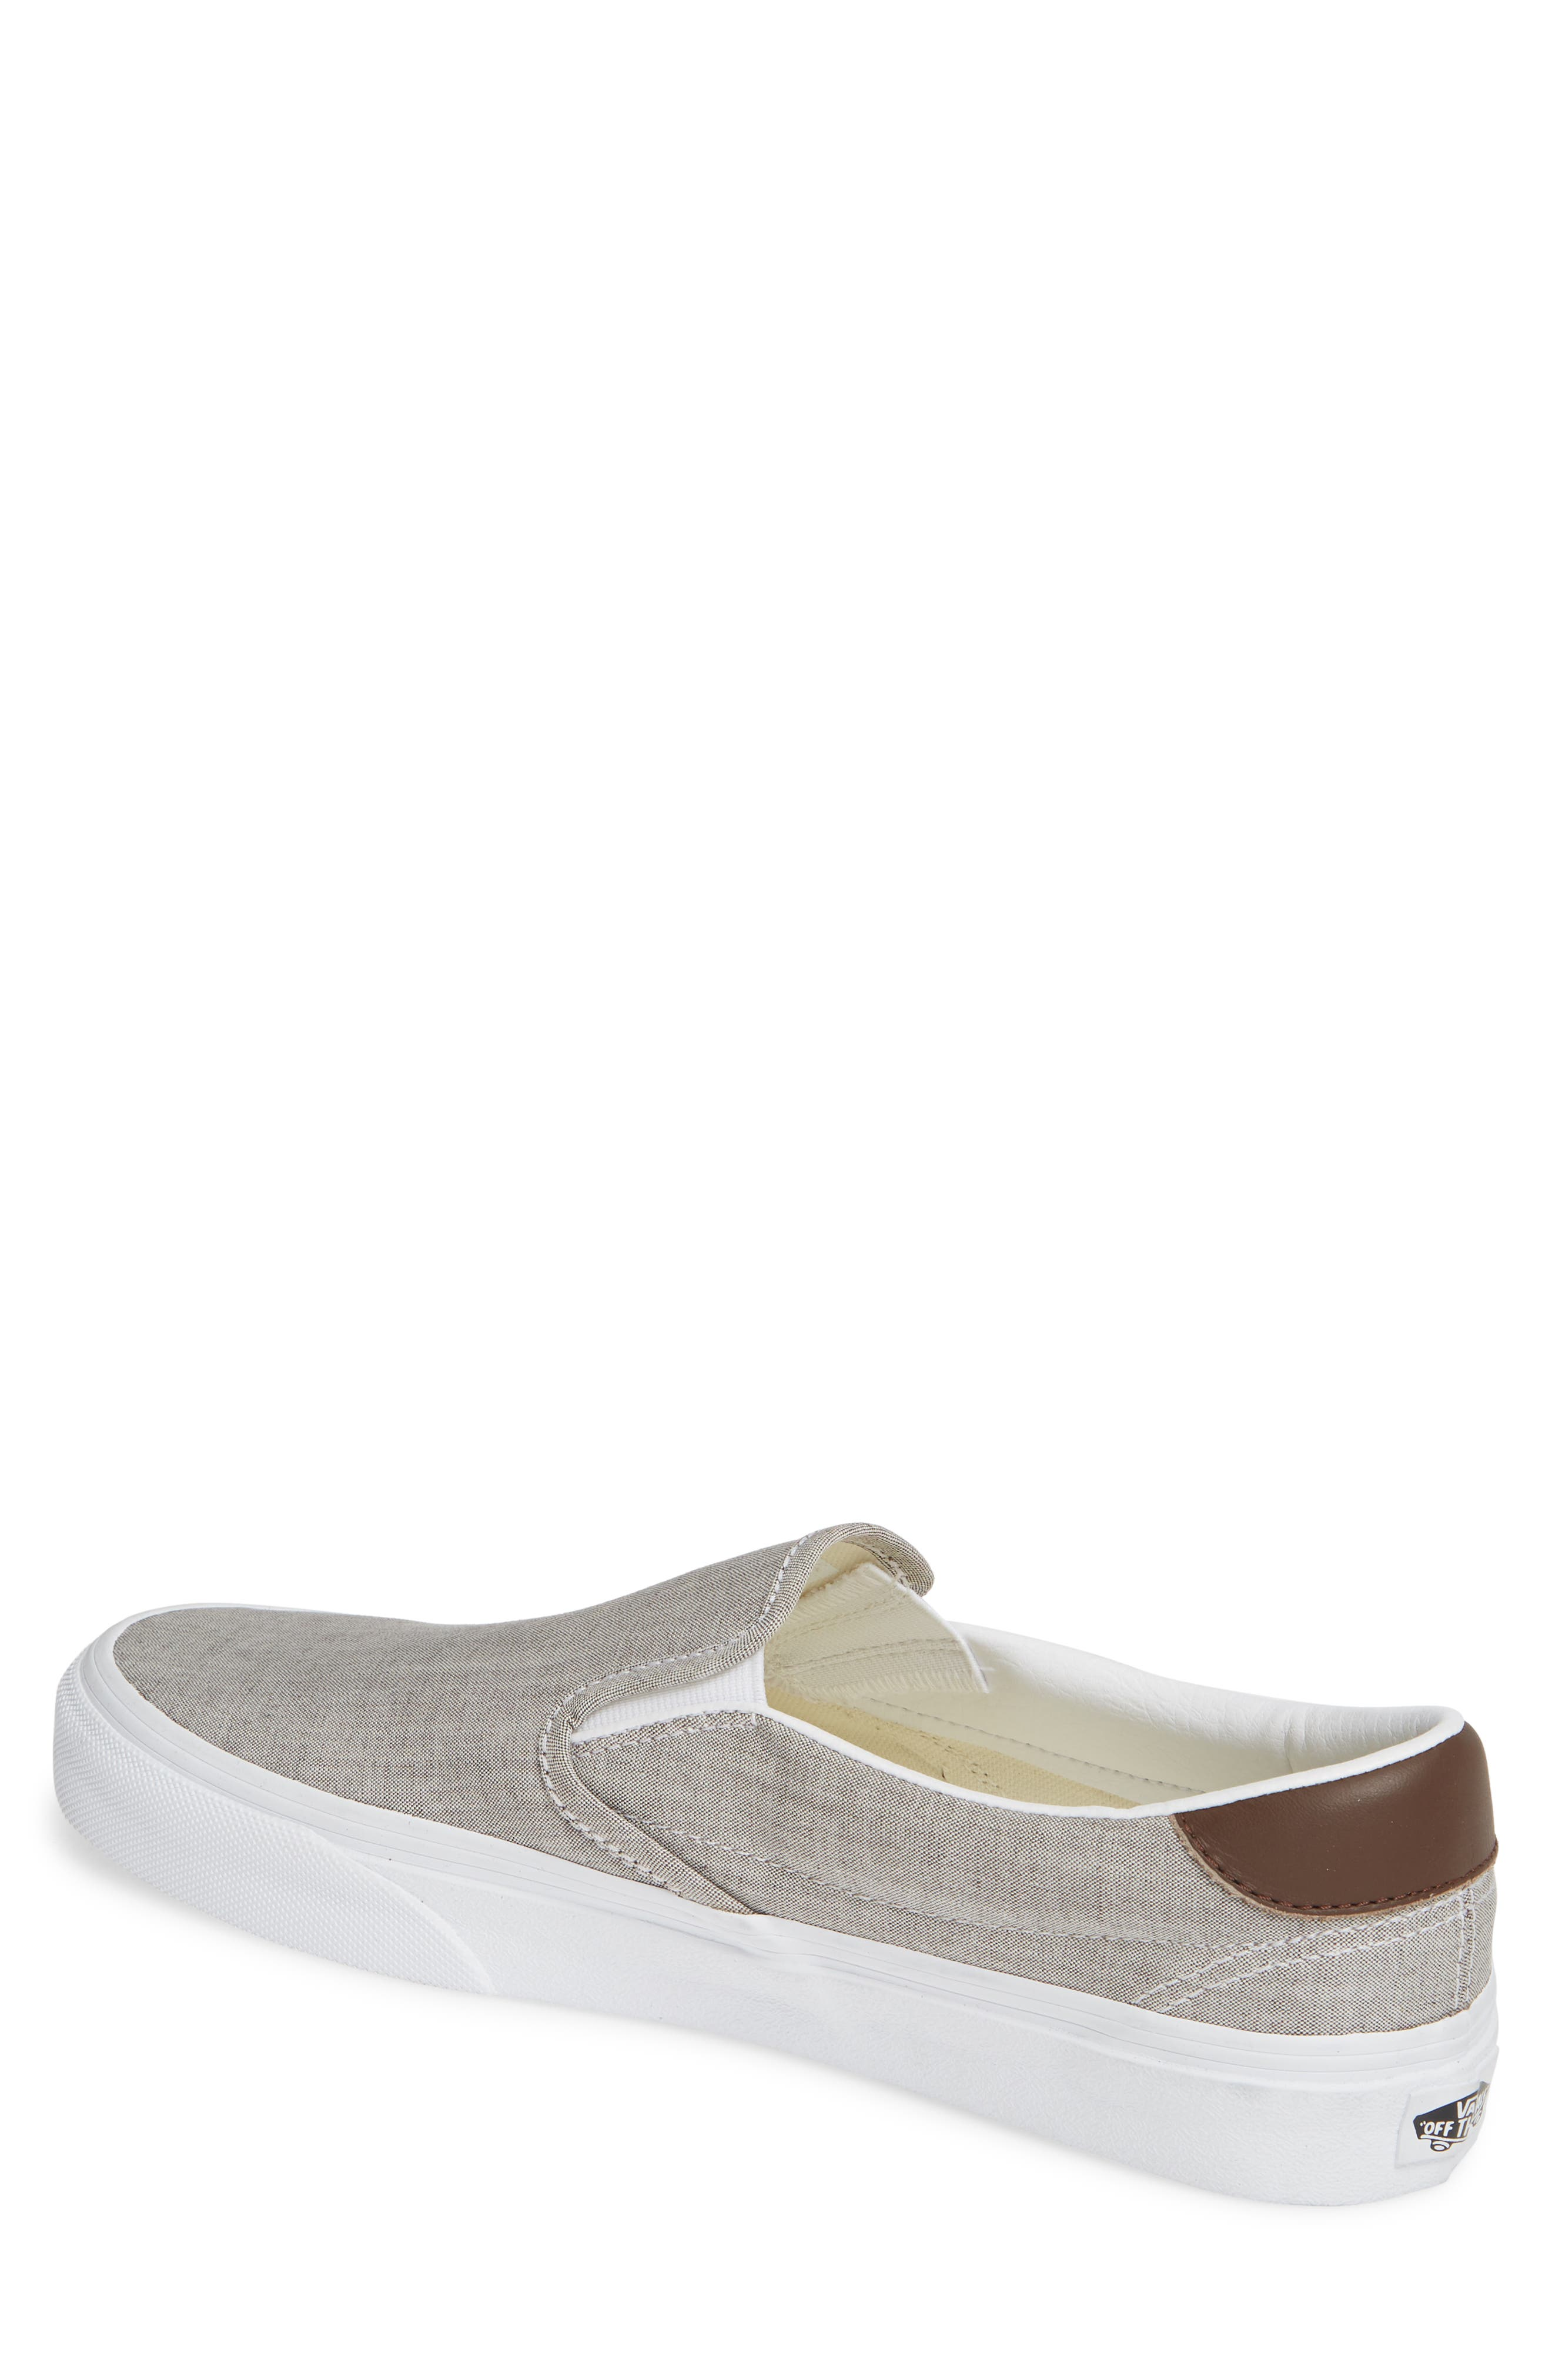 ,                             59 Classic Slip-On Sneaker,                             Alternate thumbnail 14, color,                             210